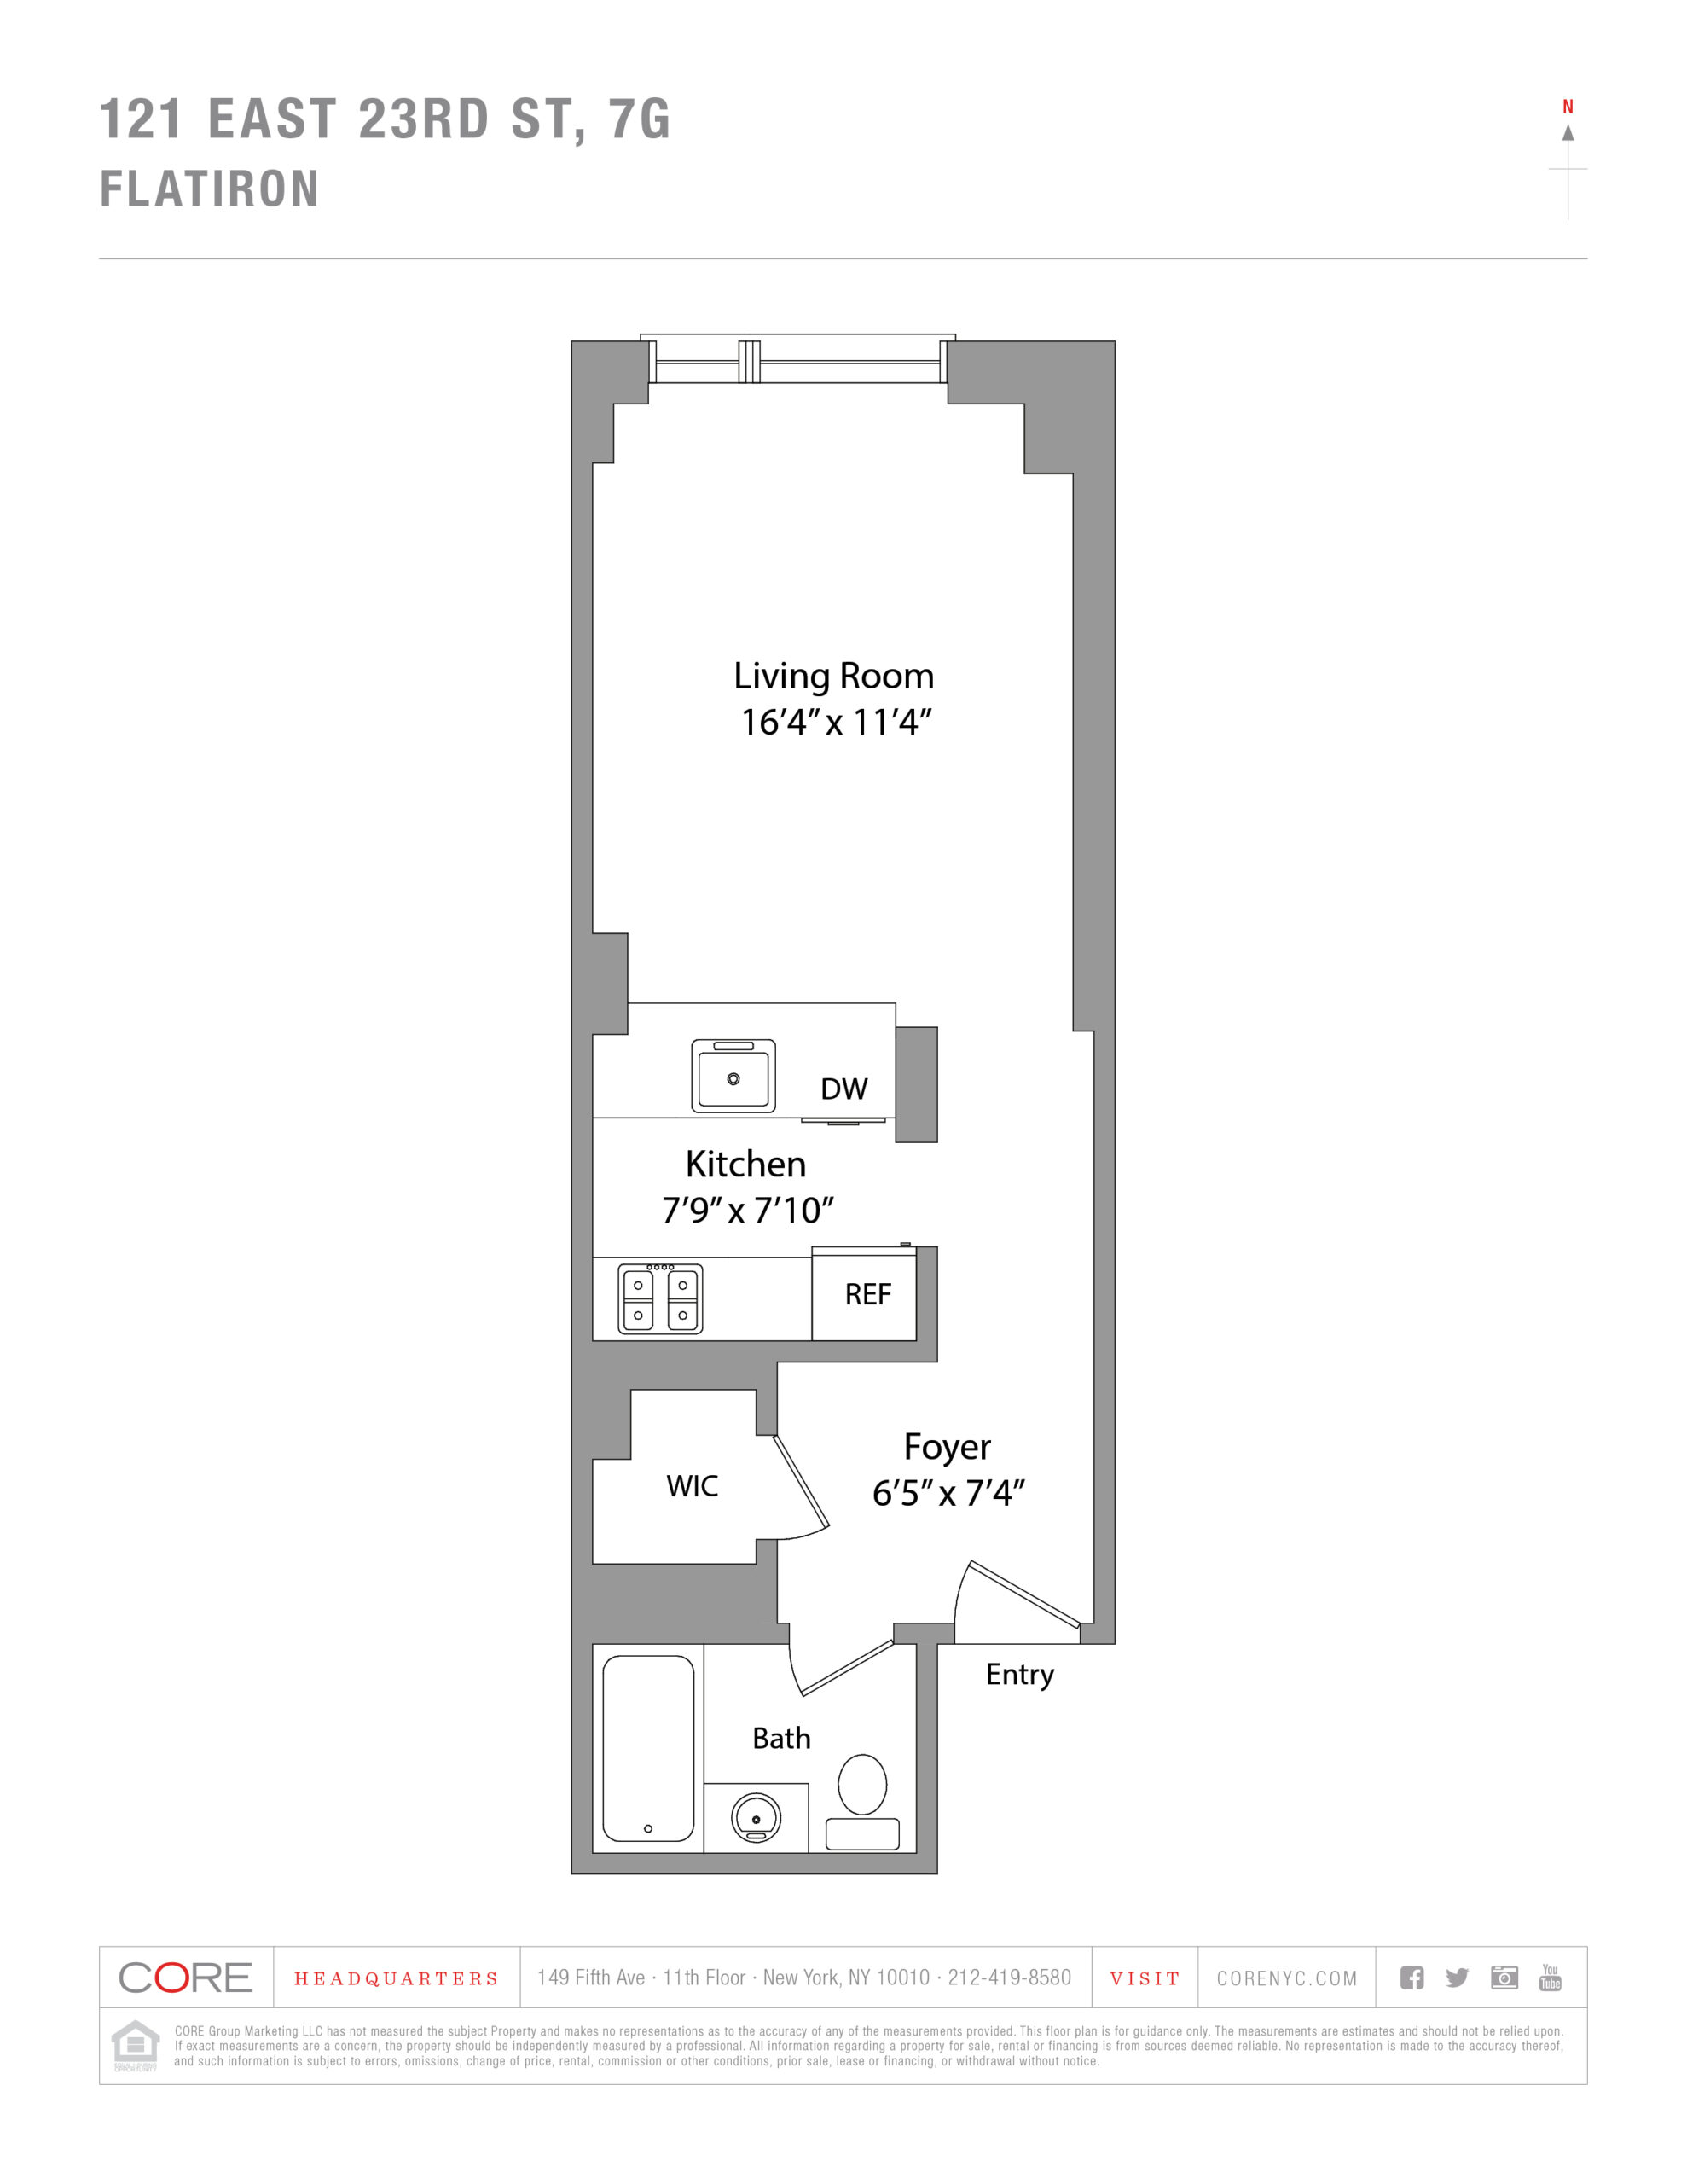 121 East 23rd St. 7G, New York, NY 10010